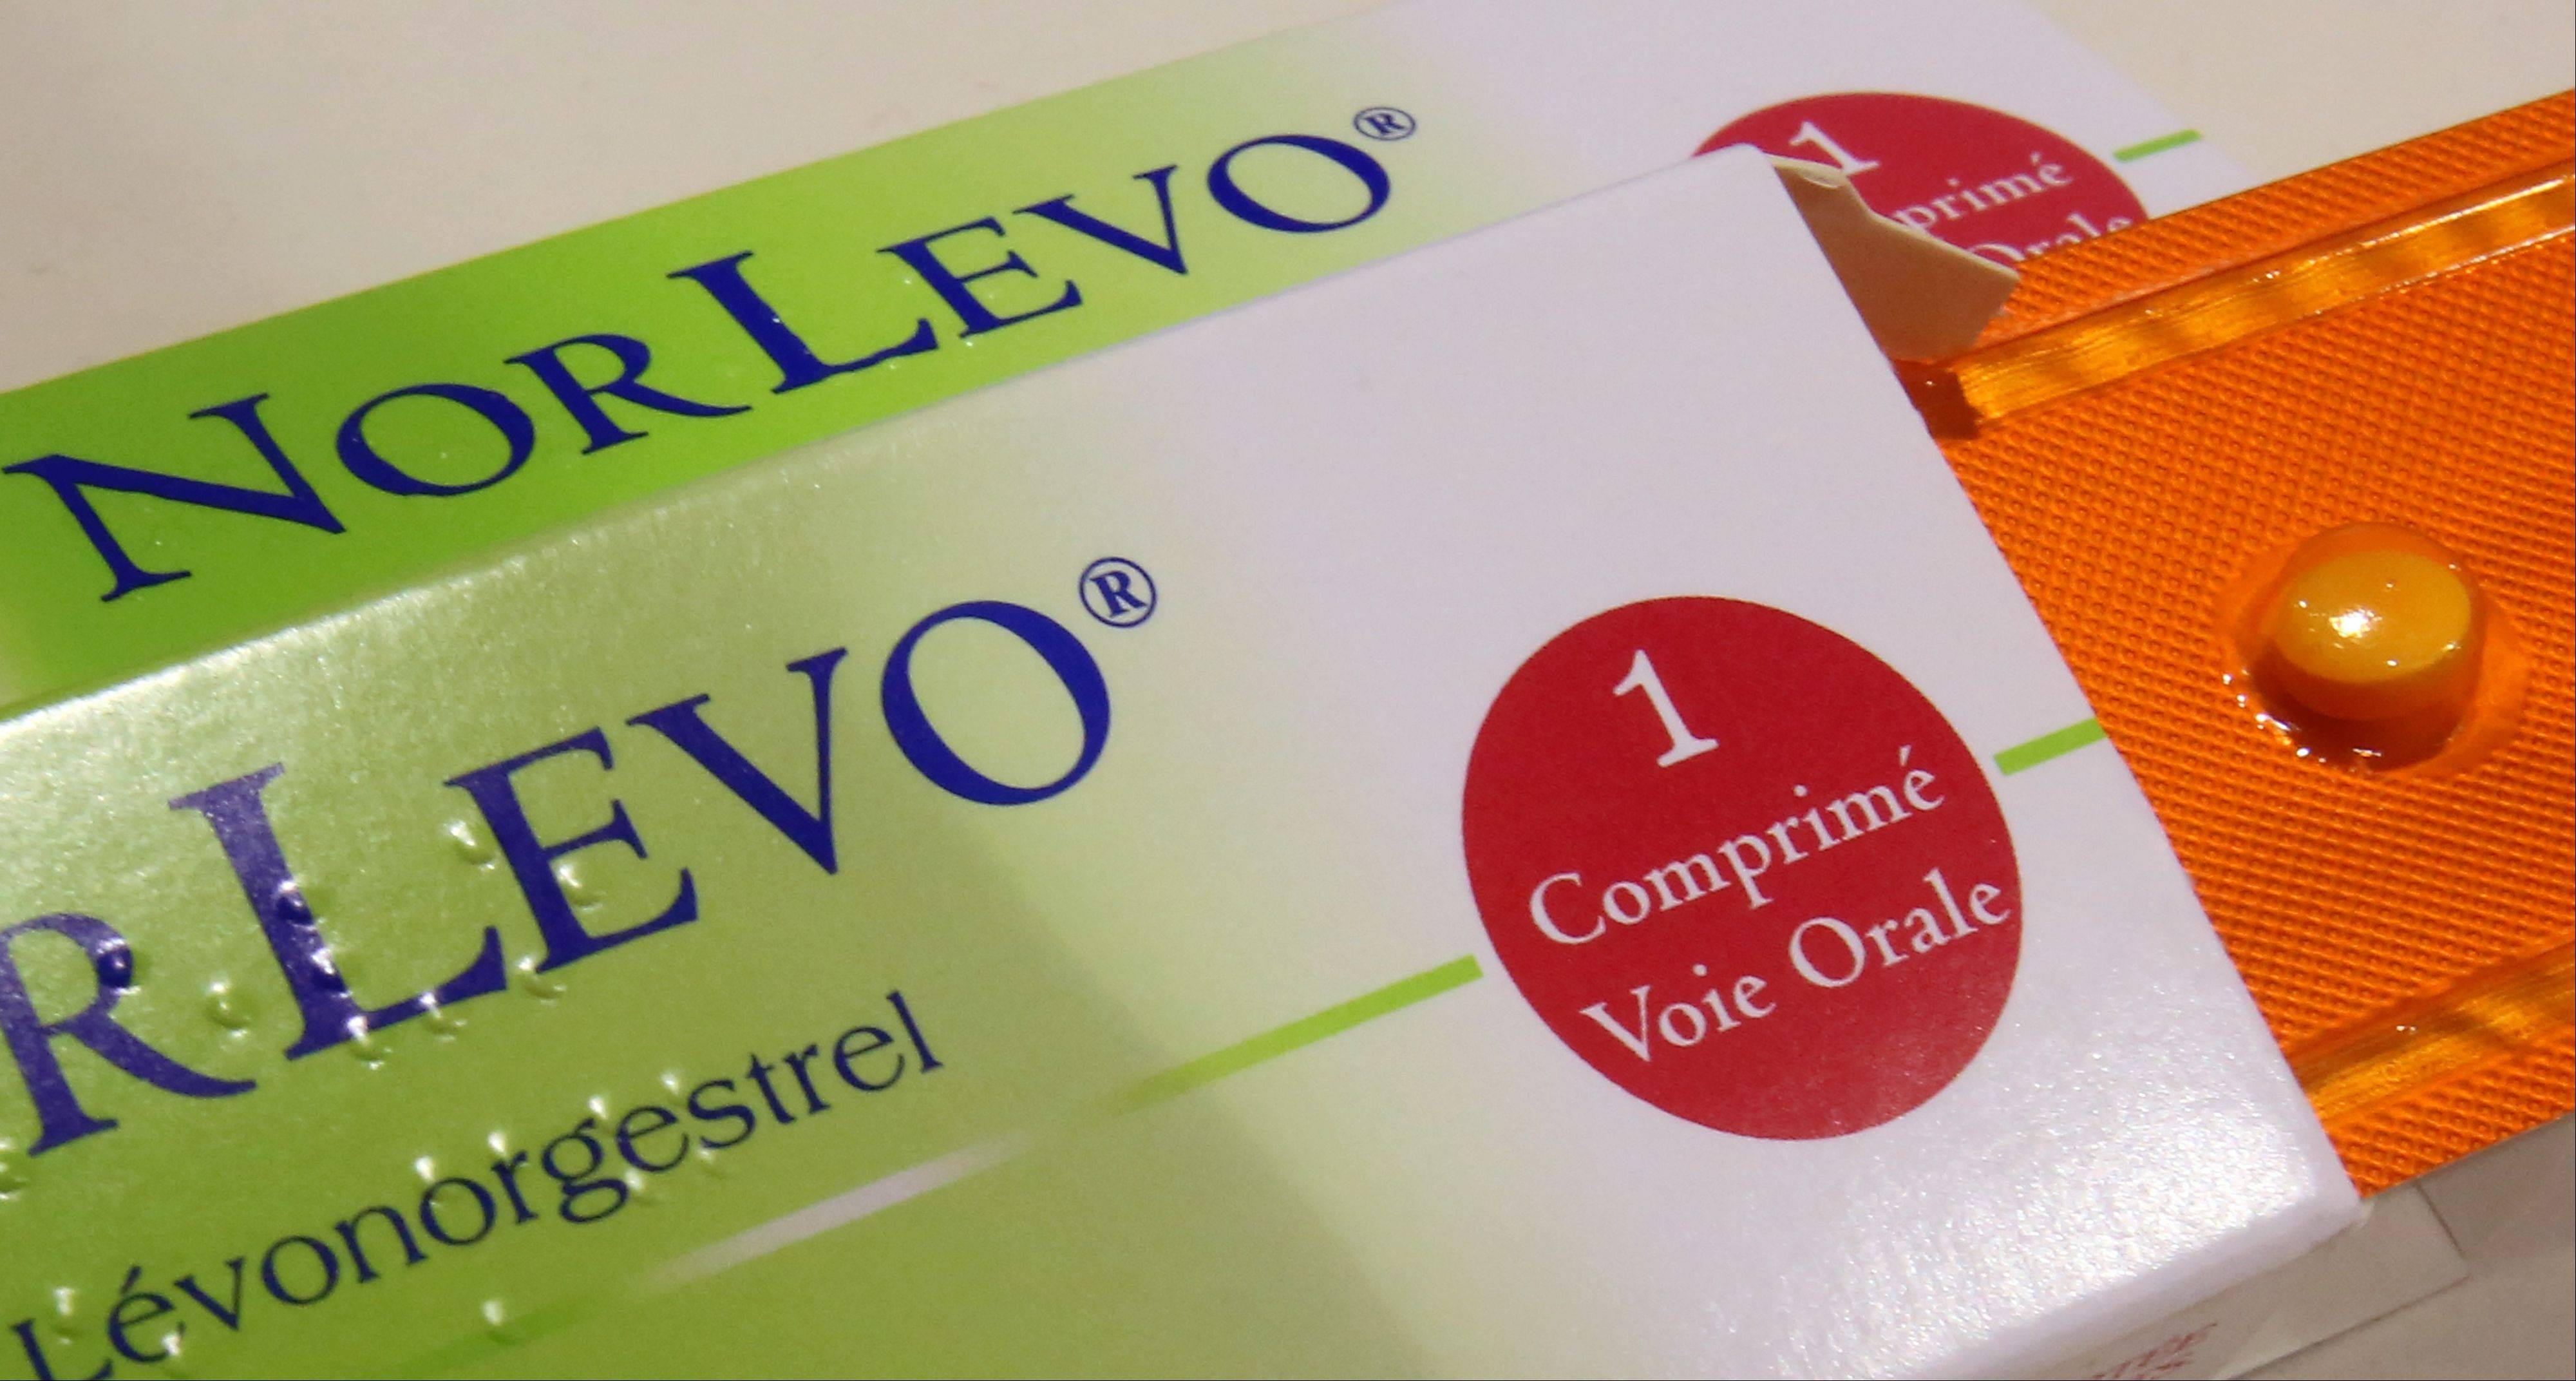 Boxes of Norlevo emergency contraceptive. HRA Pharma head will warn women following the publication of results of a study of levonorgestrel. The French contraceptive maker said Tuesday its morning-after pill is ineffective when taken by women who weigh more than 176 pounds.